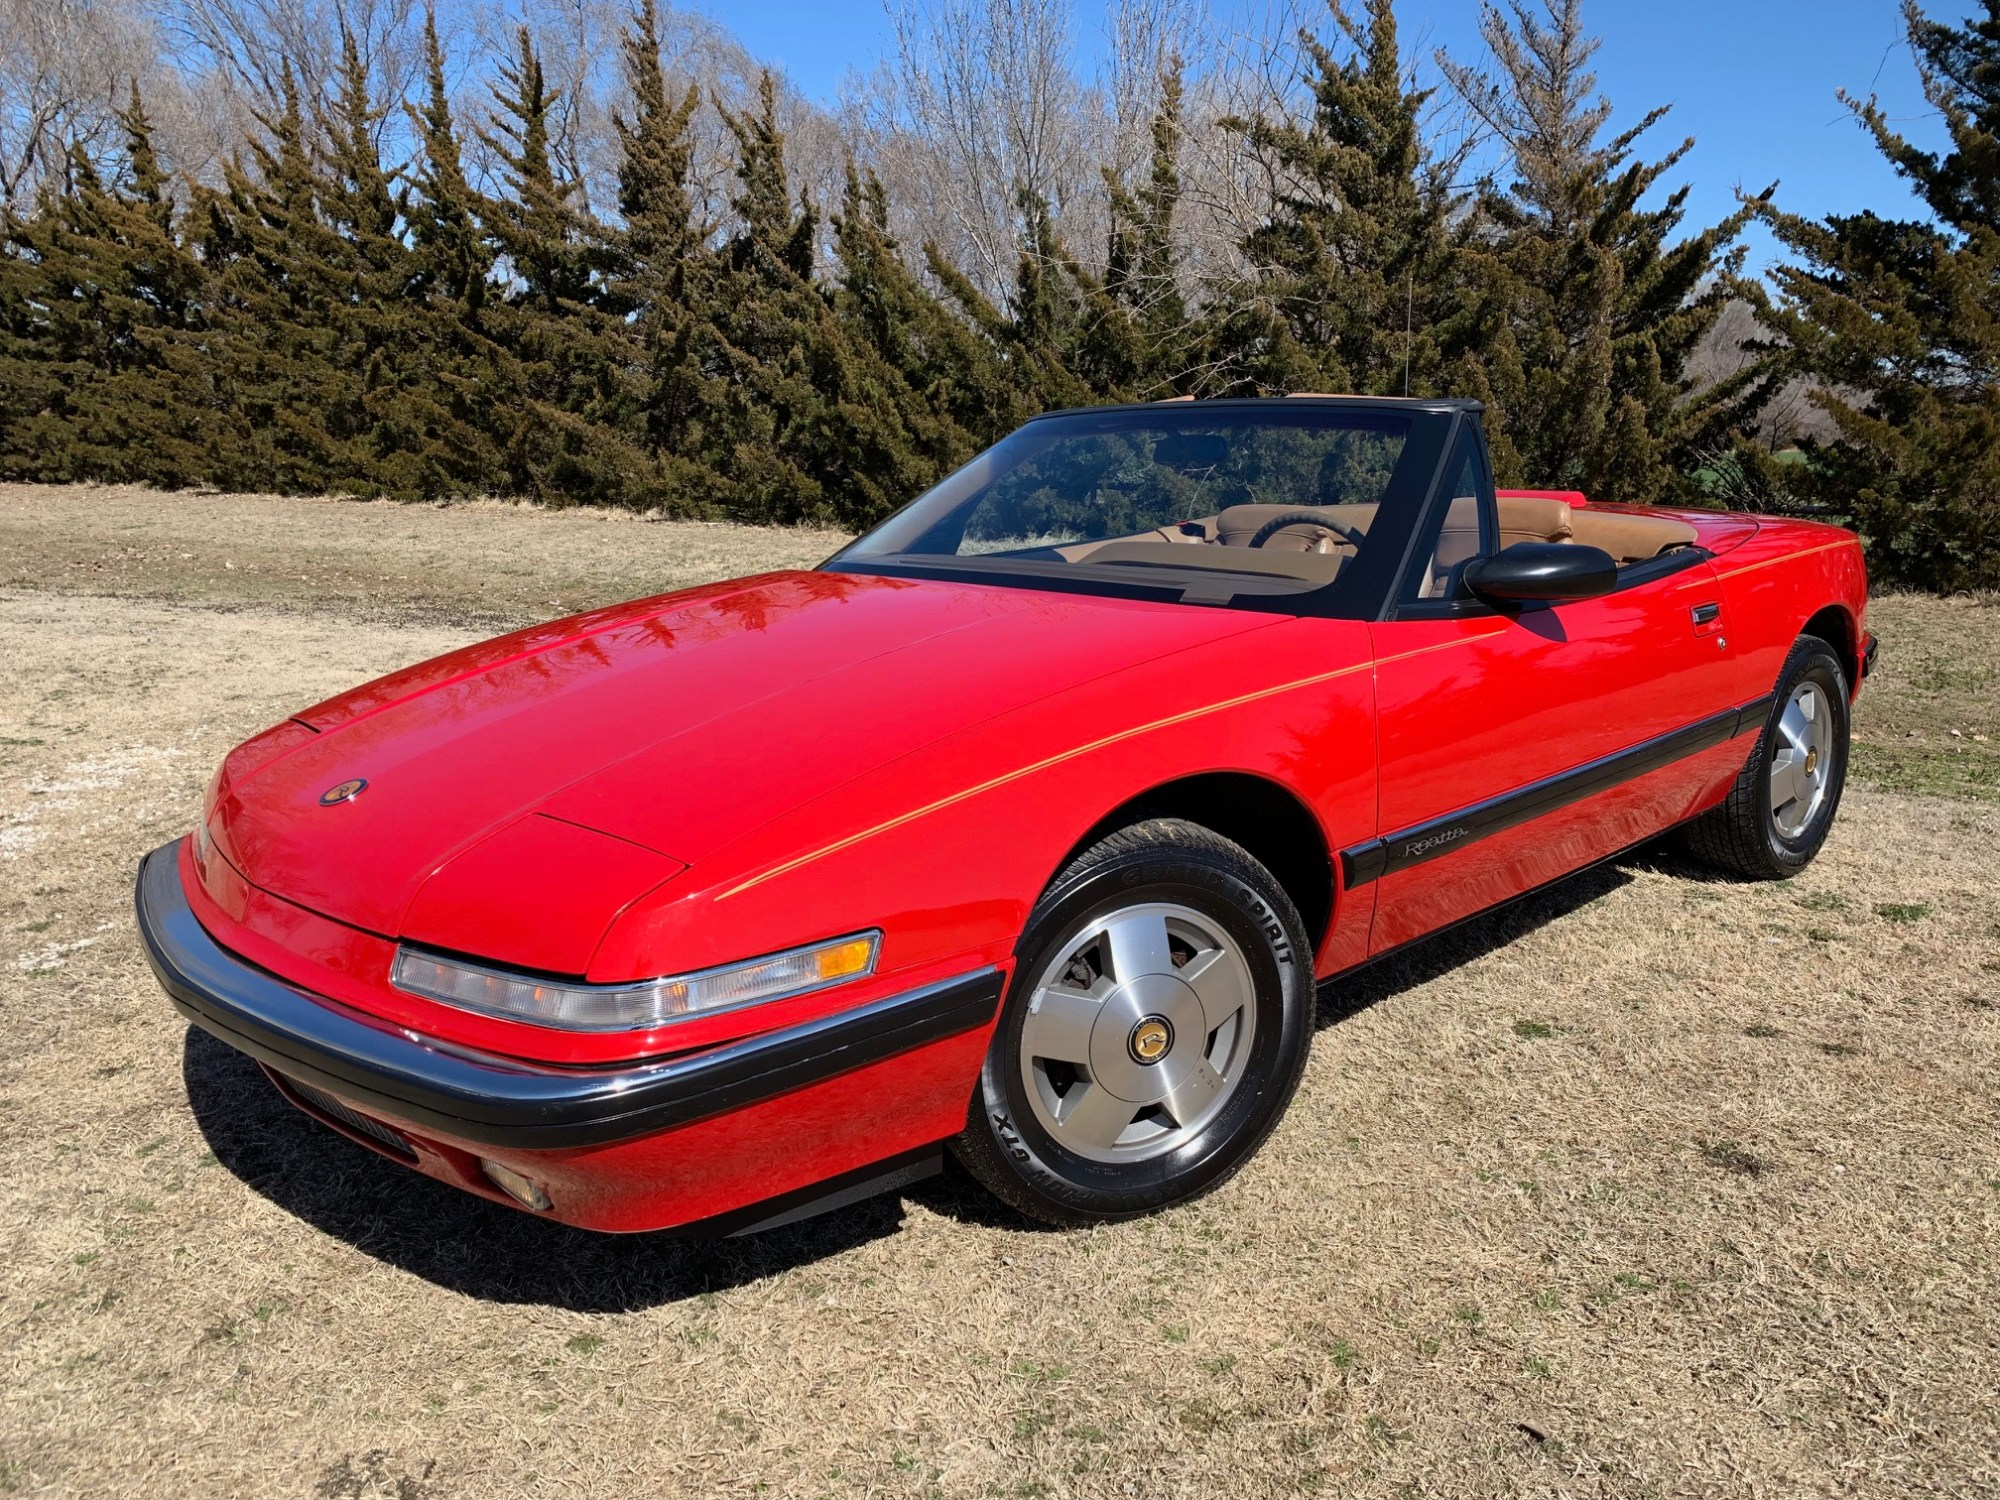 hight resolution of no reserve 1990 buick reatta for sale on bat auctions sold for 6 705 on may 28 2019 lot 19 269 bring a trailer